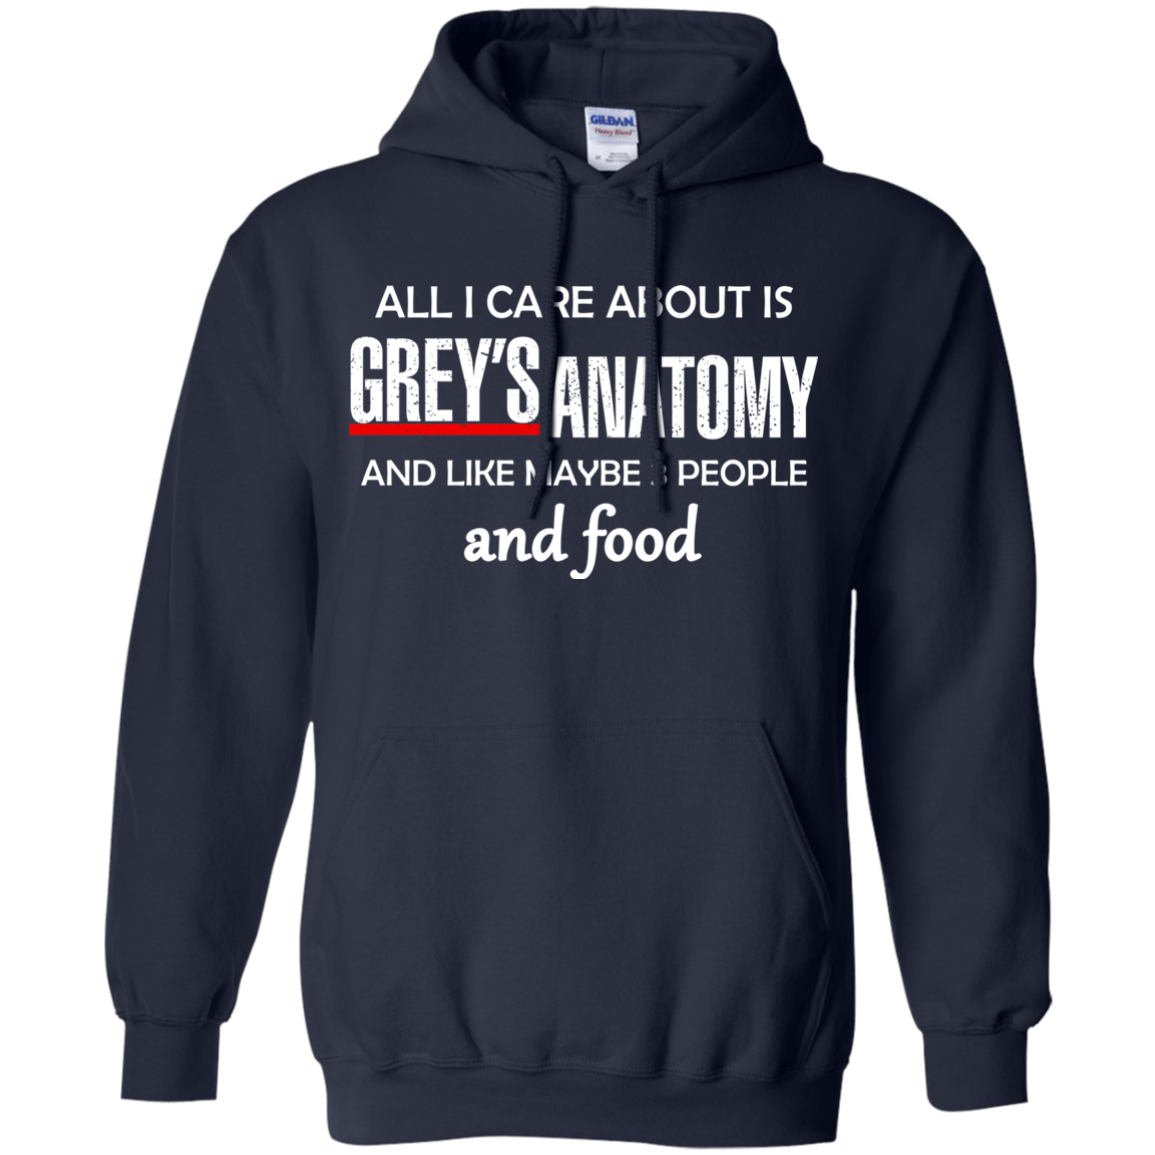 All I Care About Is Greys Anatomy and Food T-Shirt, Sweater - TeesGrab